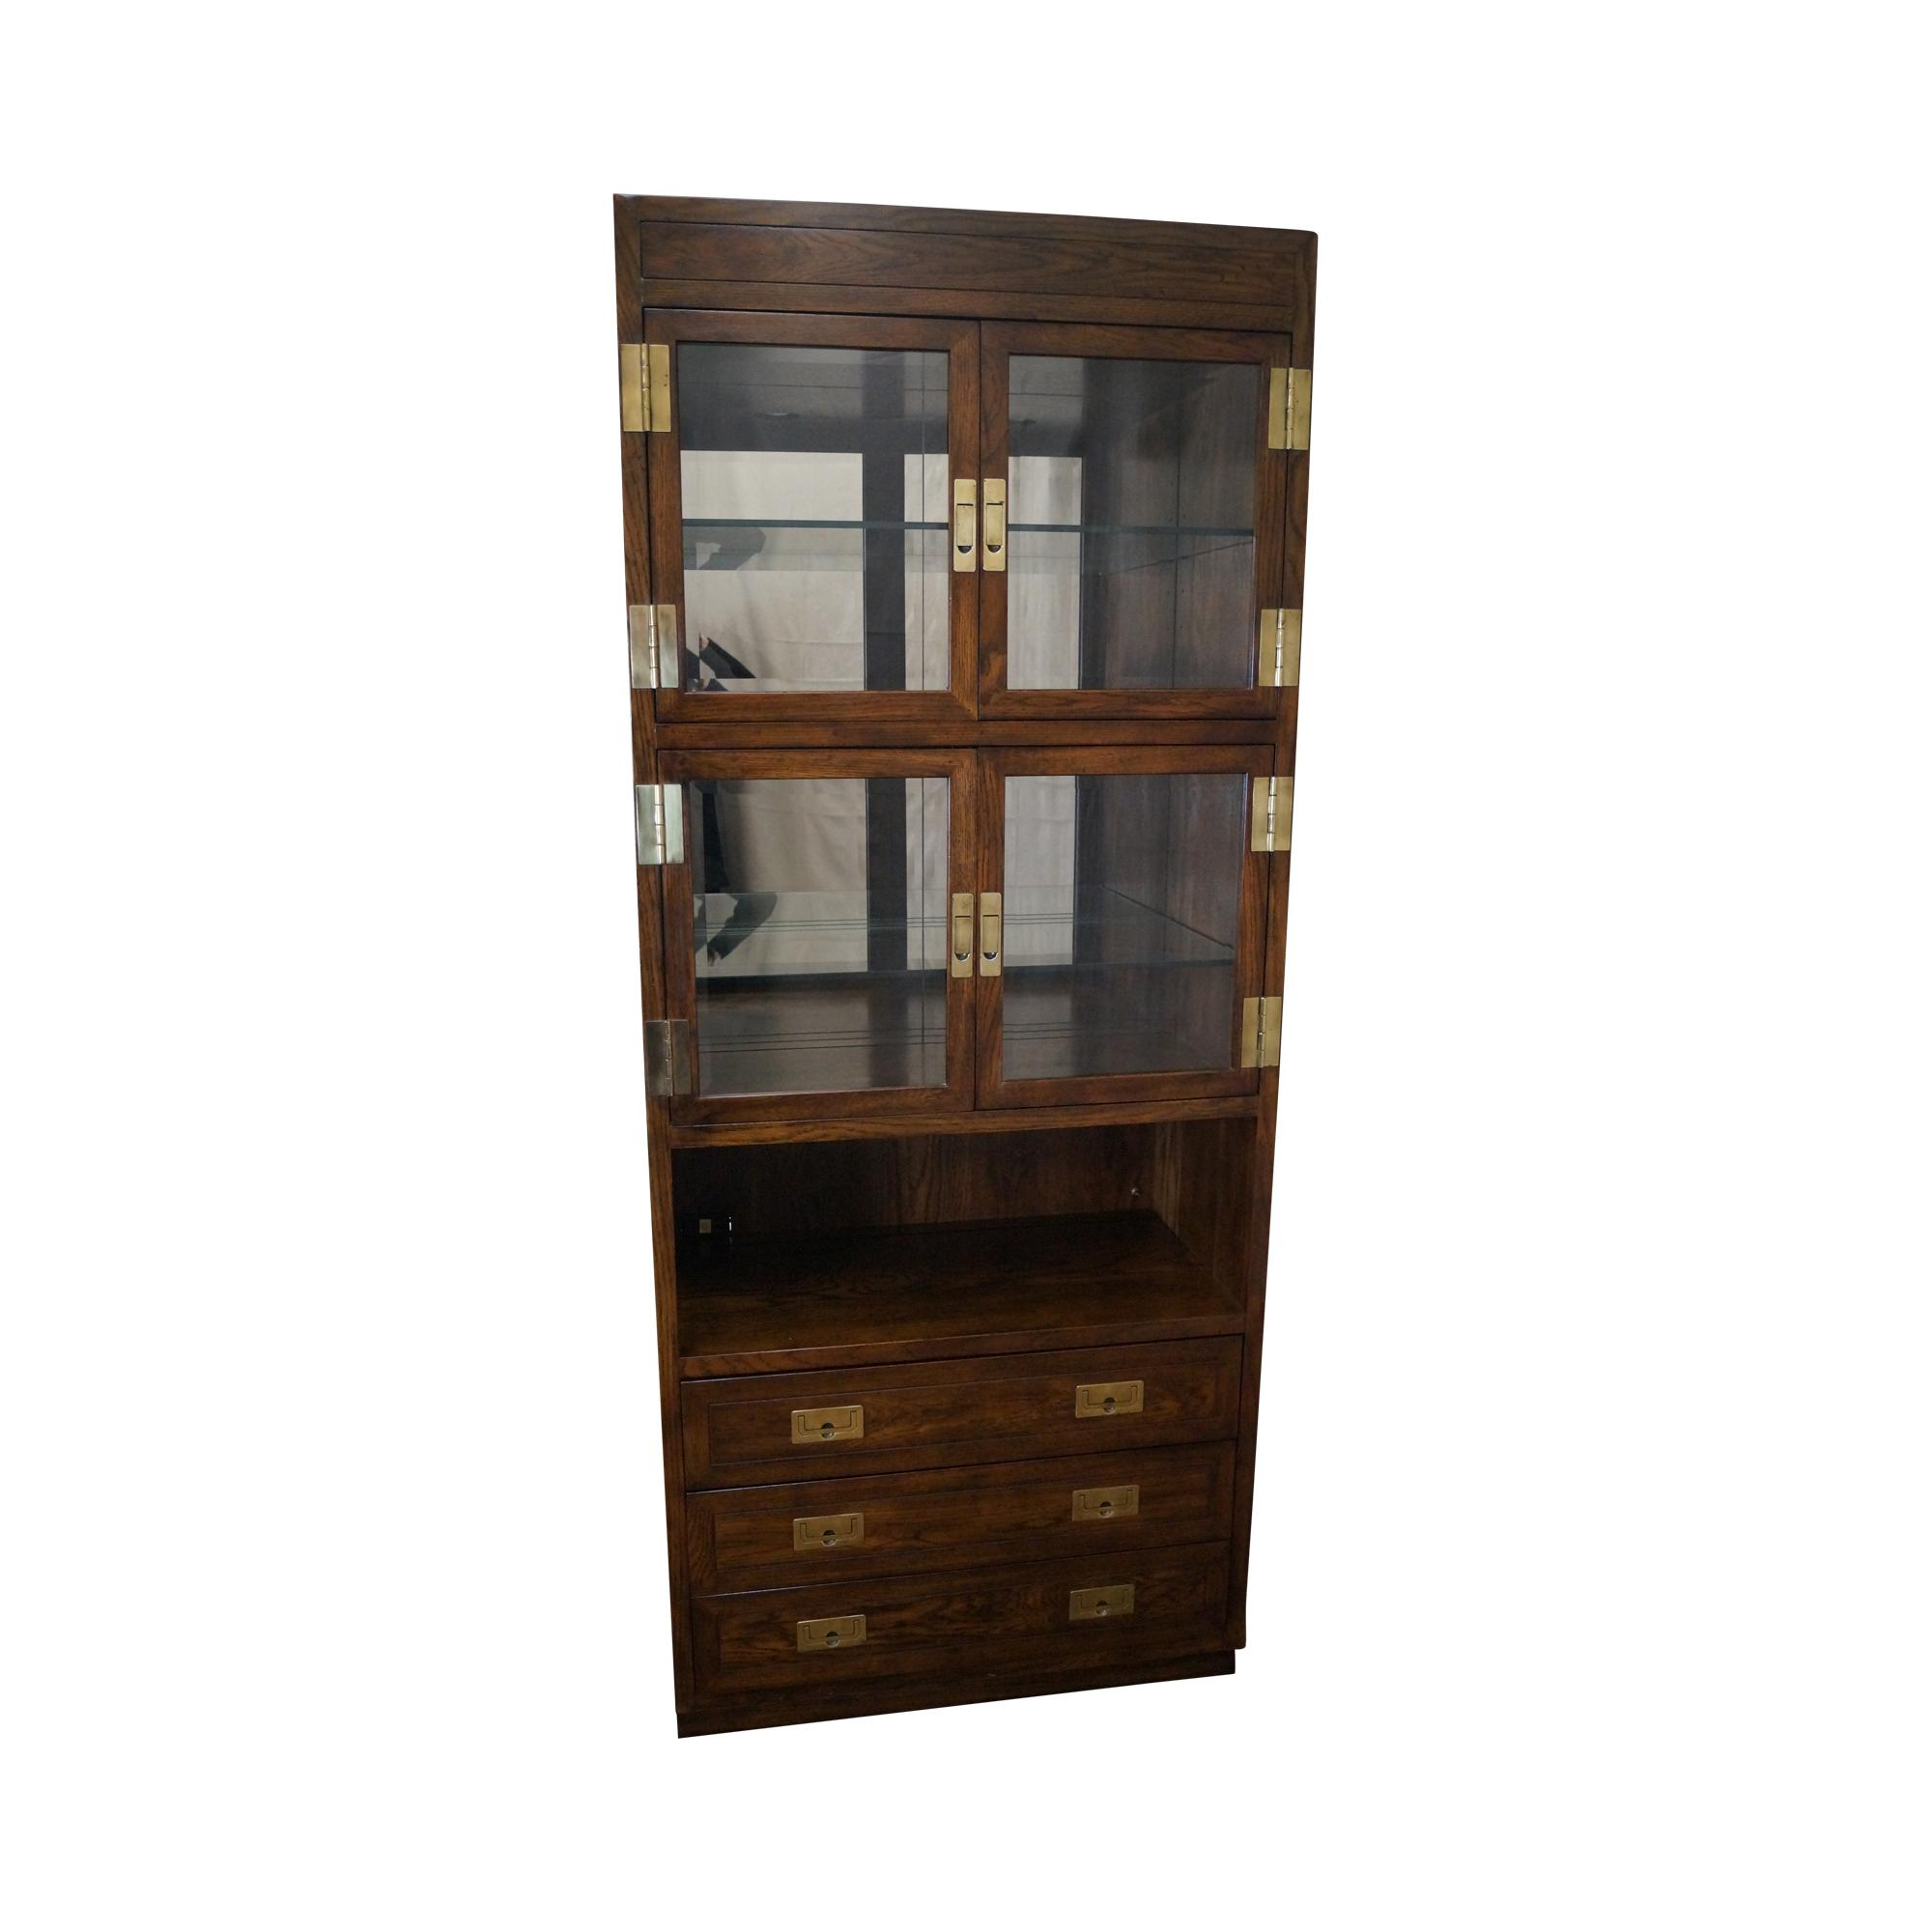 Henredon Coffee Tables Images News And Entertainment  : henredon scene one campaign style curio display cabinet with drawers 0594 from zenlaser.co size 2000 x 2000 jpeg 161kB